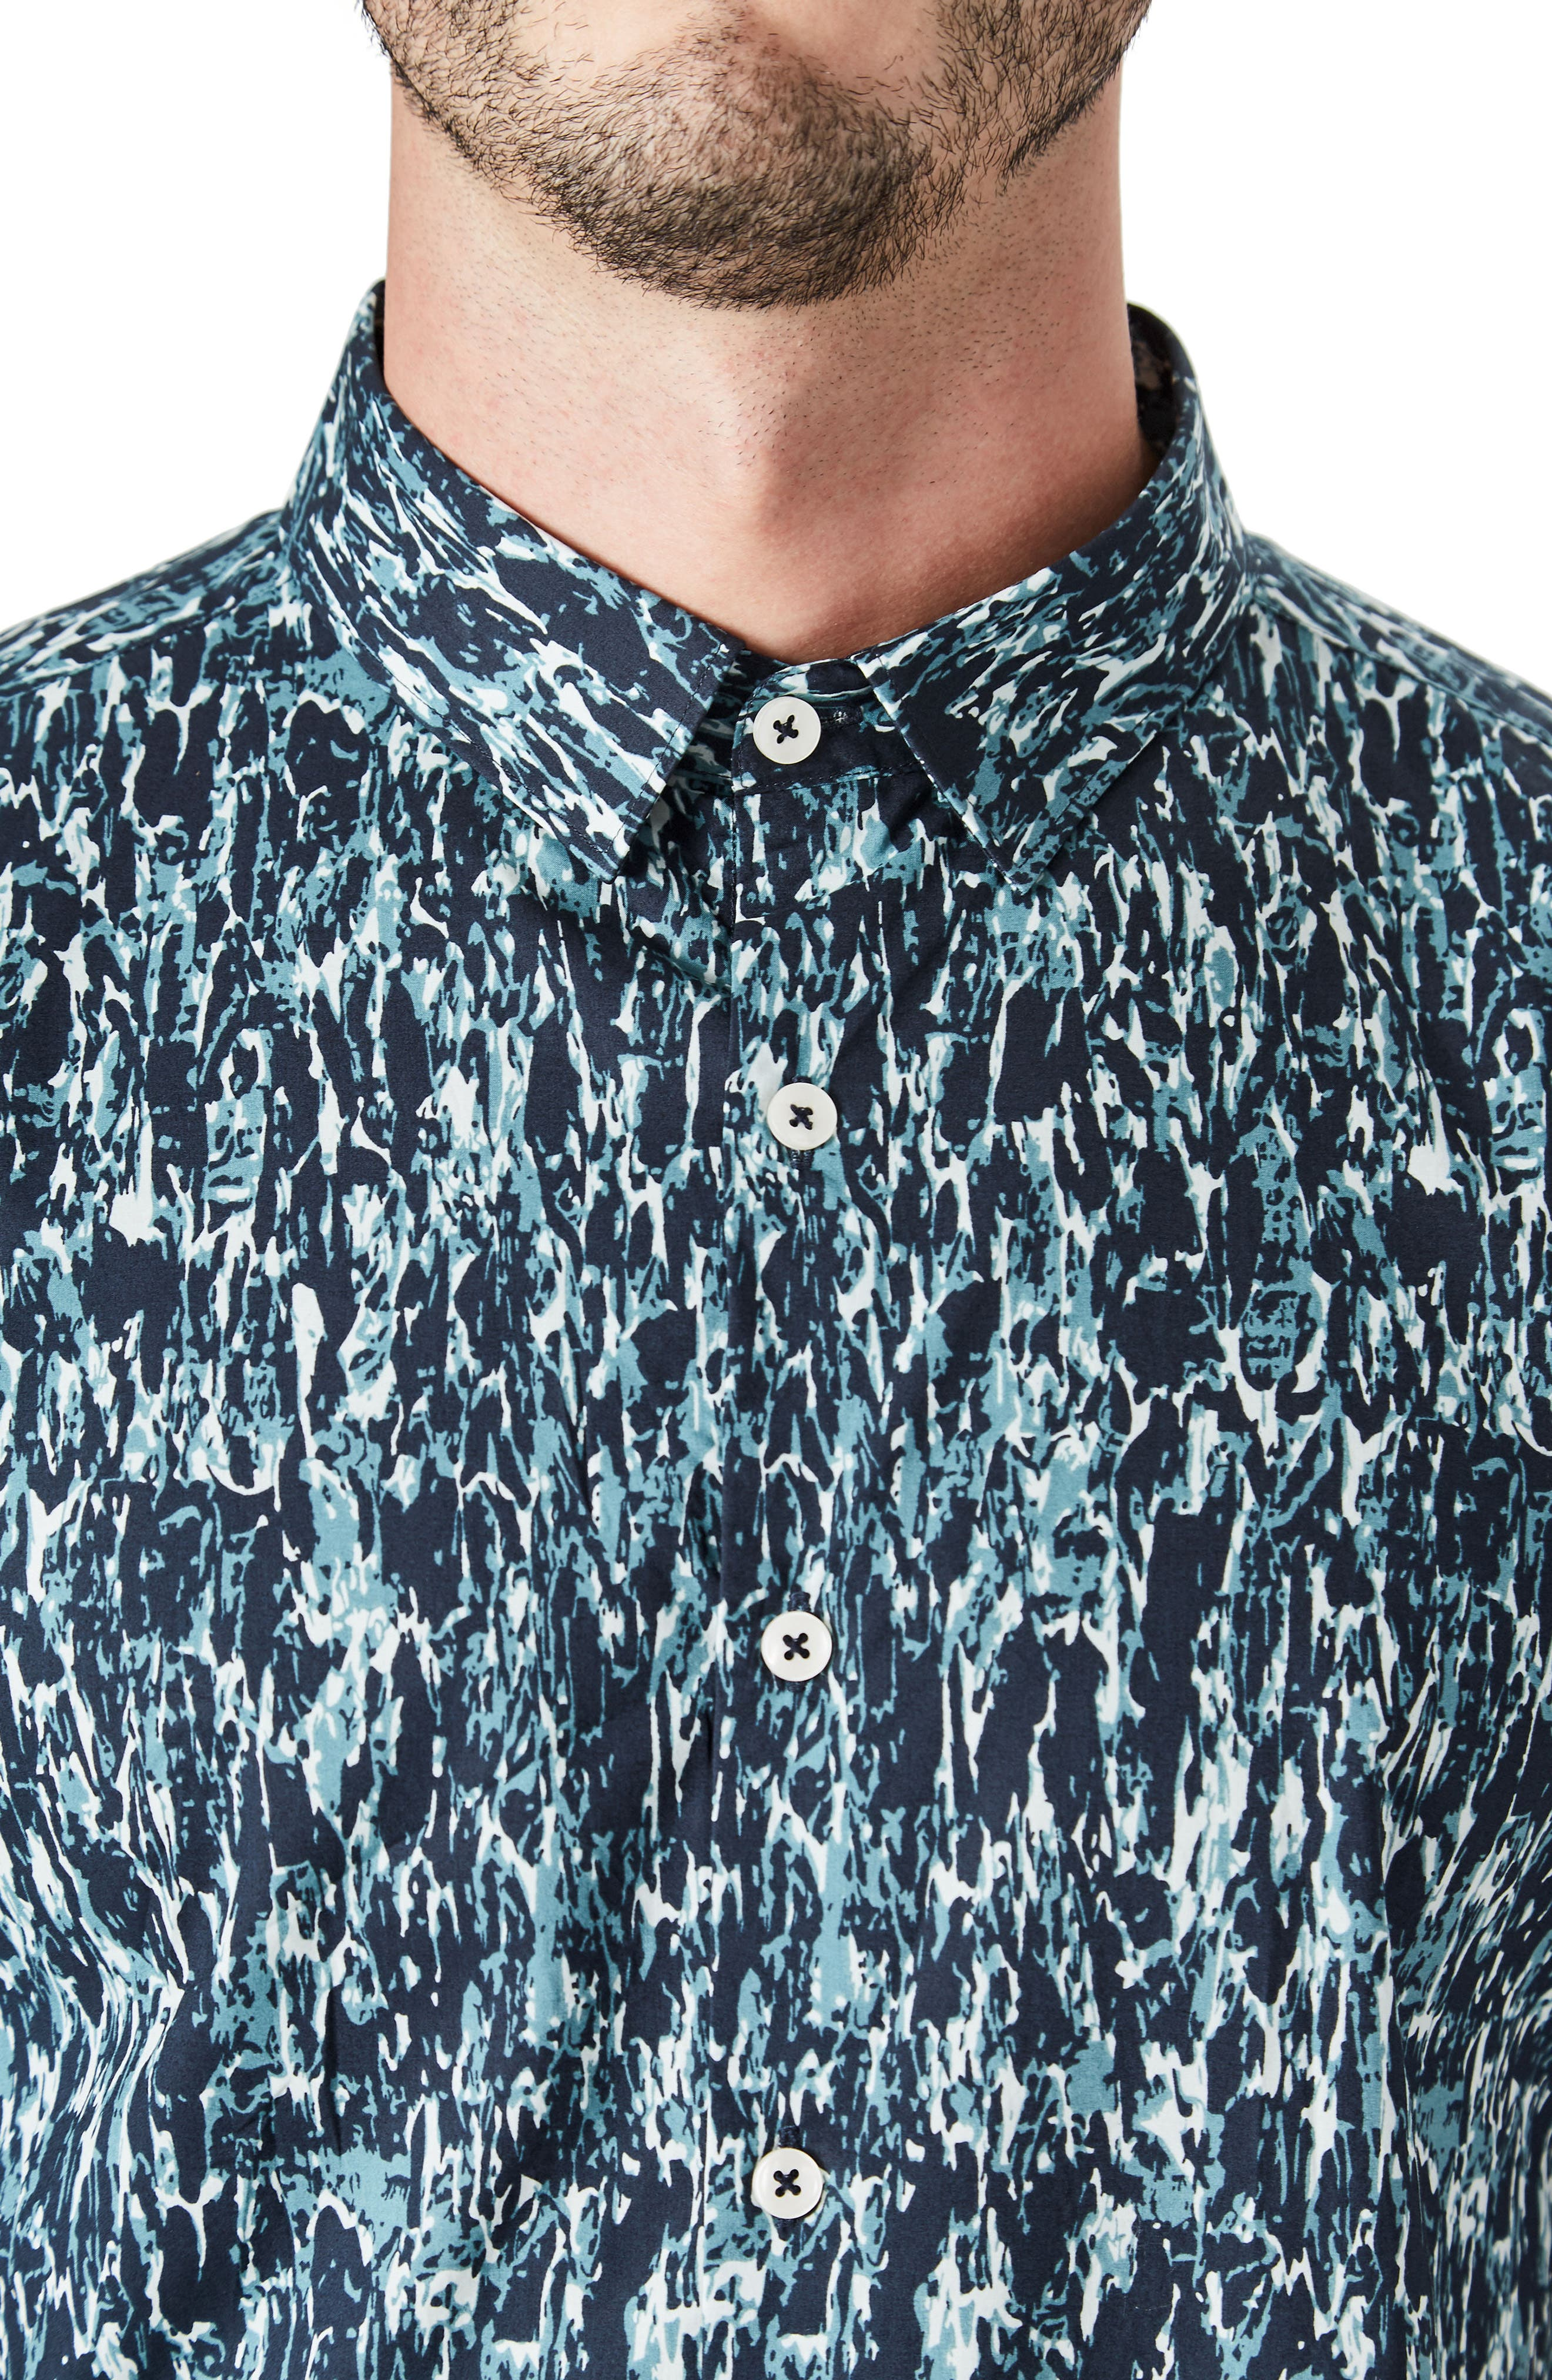 Universal Sound Woven Shirt,                             Alternate thumbnail 3, color,                             Midnight G